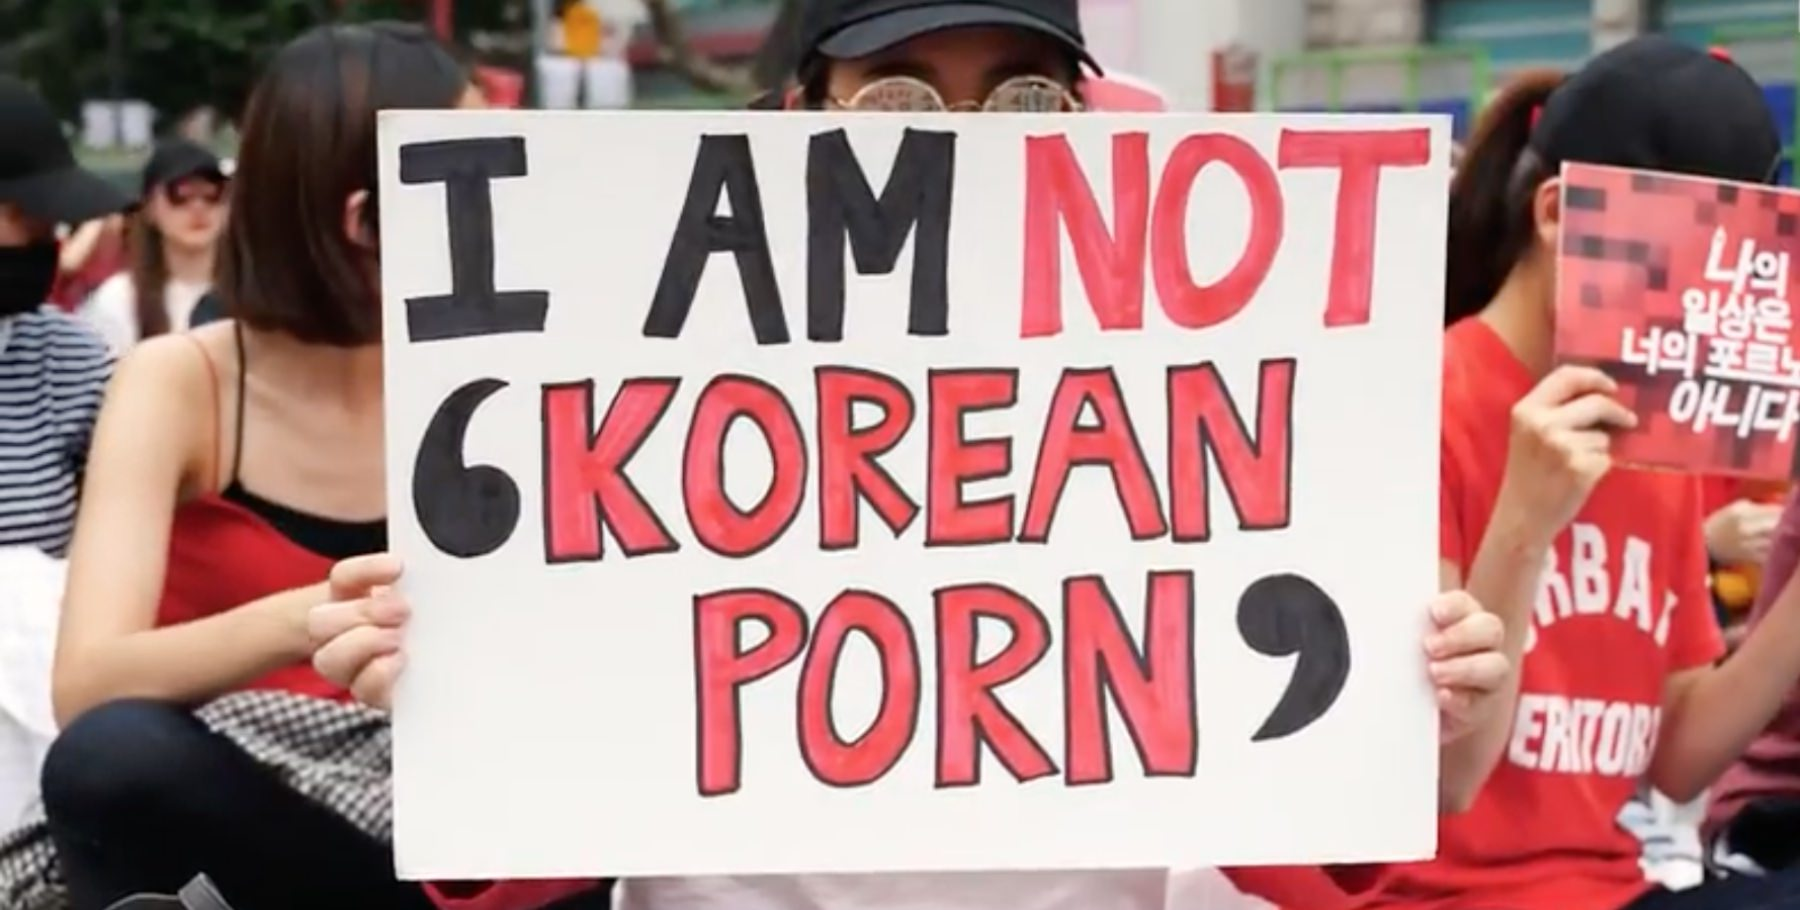 Why Over 22,000 Women in South Korea Are Protesting Against the Spycam Porn Epidemic